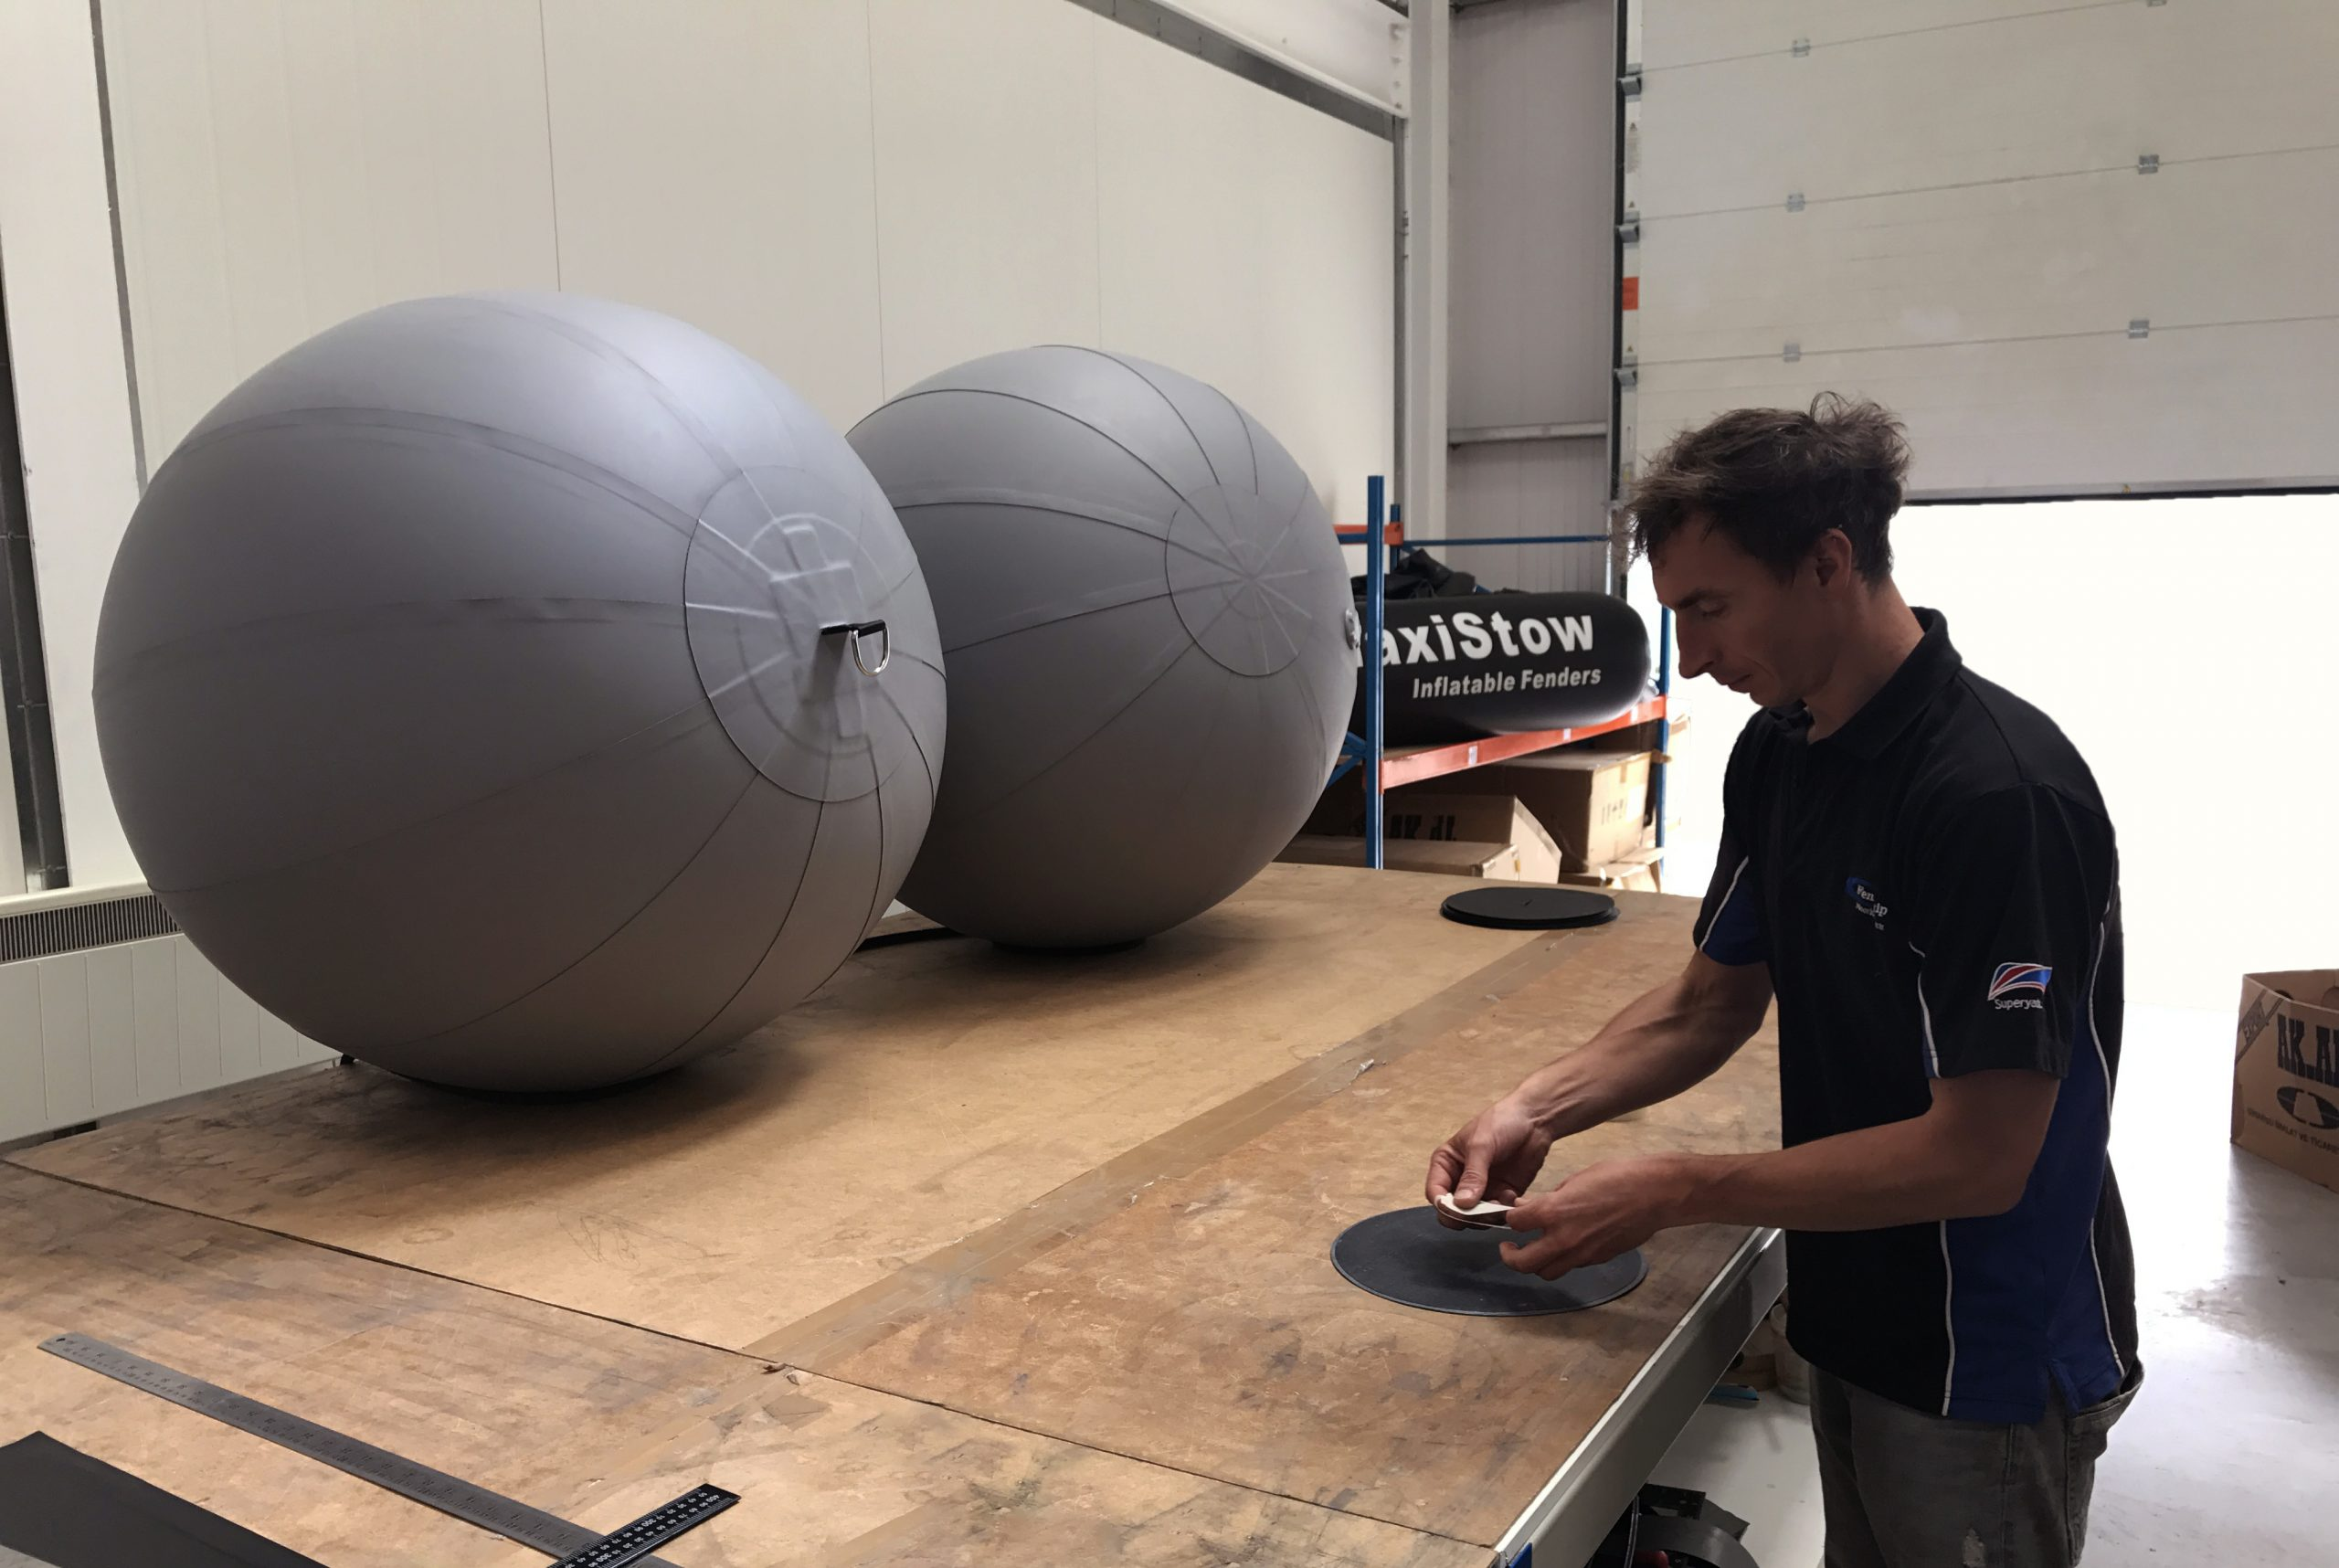 Fenders, Inflatable Fenders, maxiStow, PVC, Hypalon, PU, UK, UK Manufactured, Ship, Yacht, Super Yacht, Boat, Marine, Chafe Covers, Yacht, Ship, Boat, Super Yacht, Fendequip, Boat Protection, UK, UK Manufactured